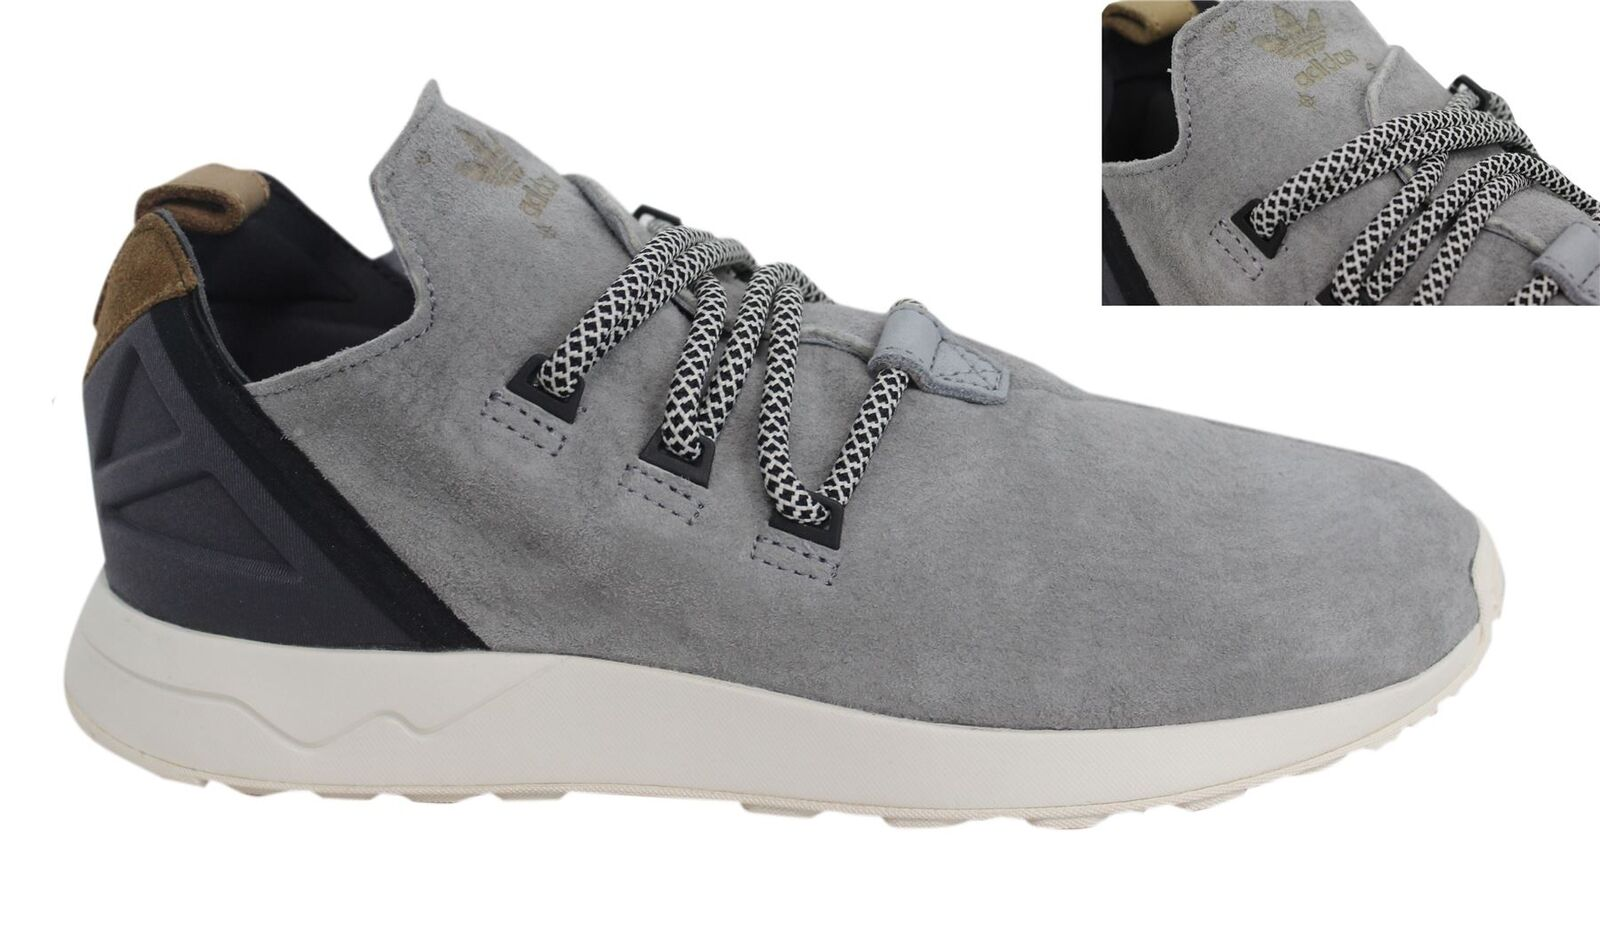 Adidas Originals ZX Flux Adv X Lace Up Grey Leather Mens Trainers S76364 D44